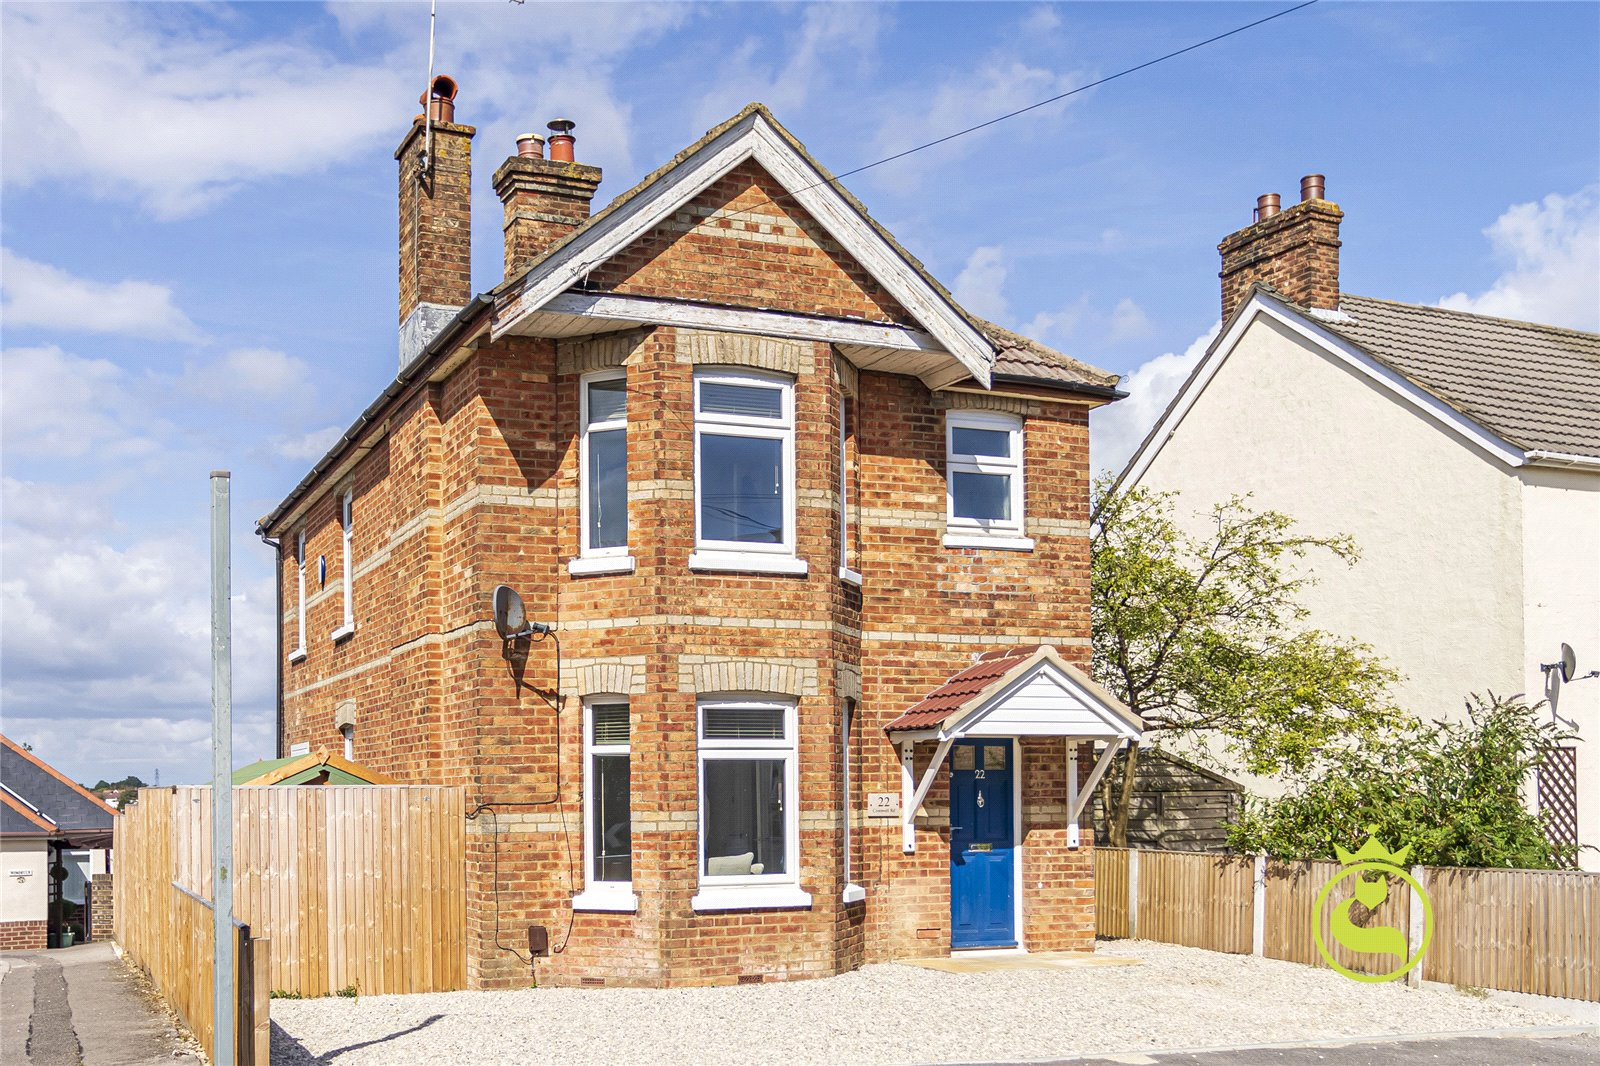 3 bed house for sale in Cromwell Road, Parkstone 0